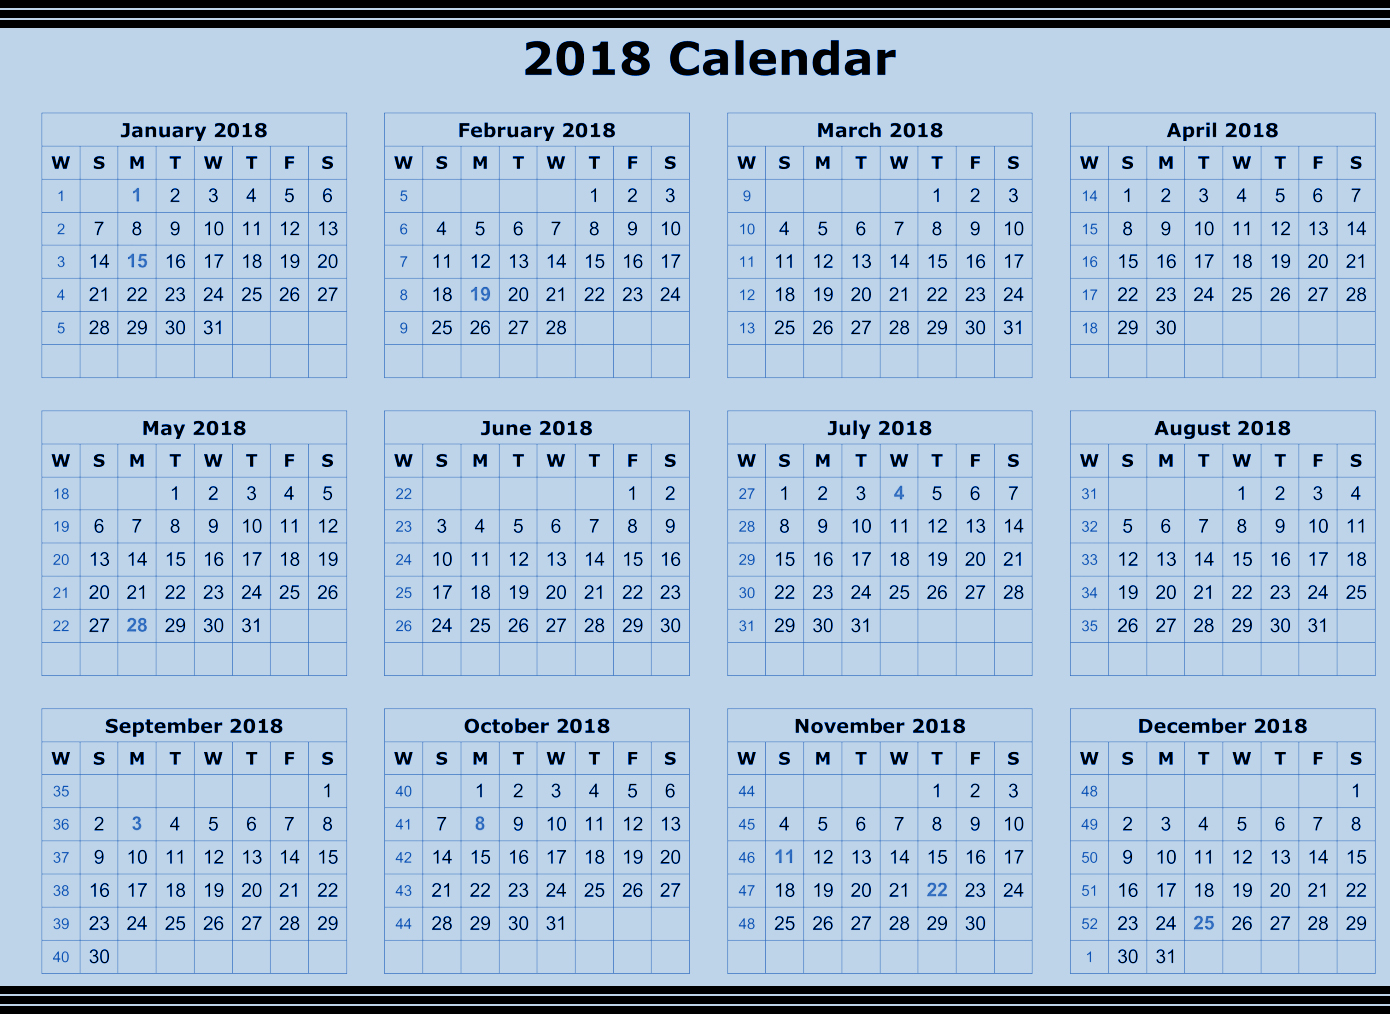 Annual calendar 2018 | 2018 Calendar printable for Free ...